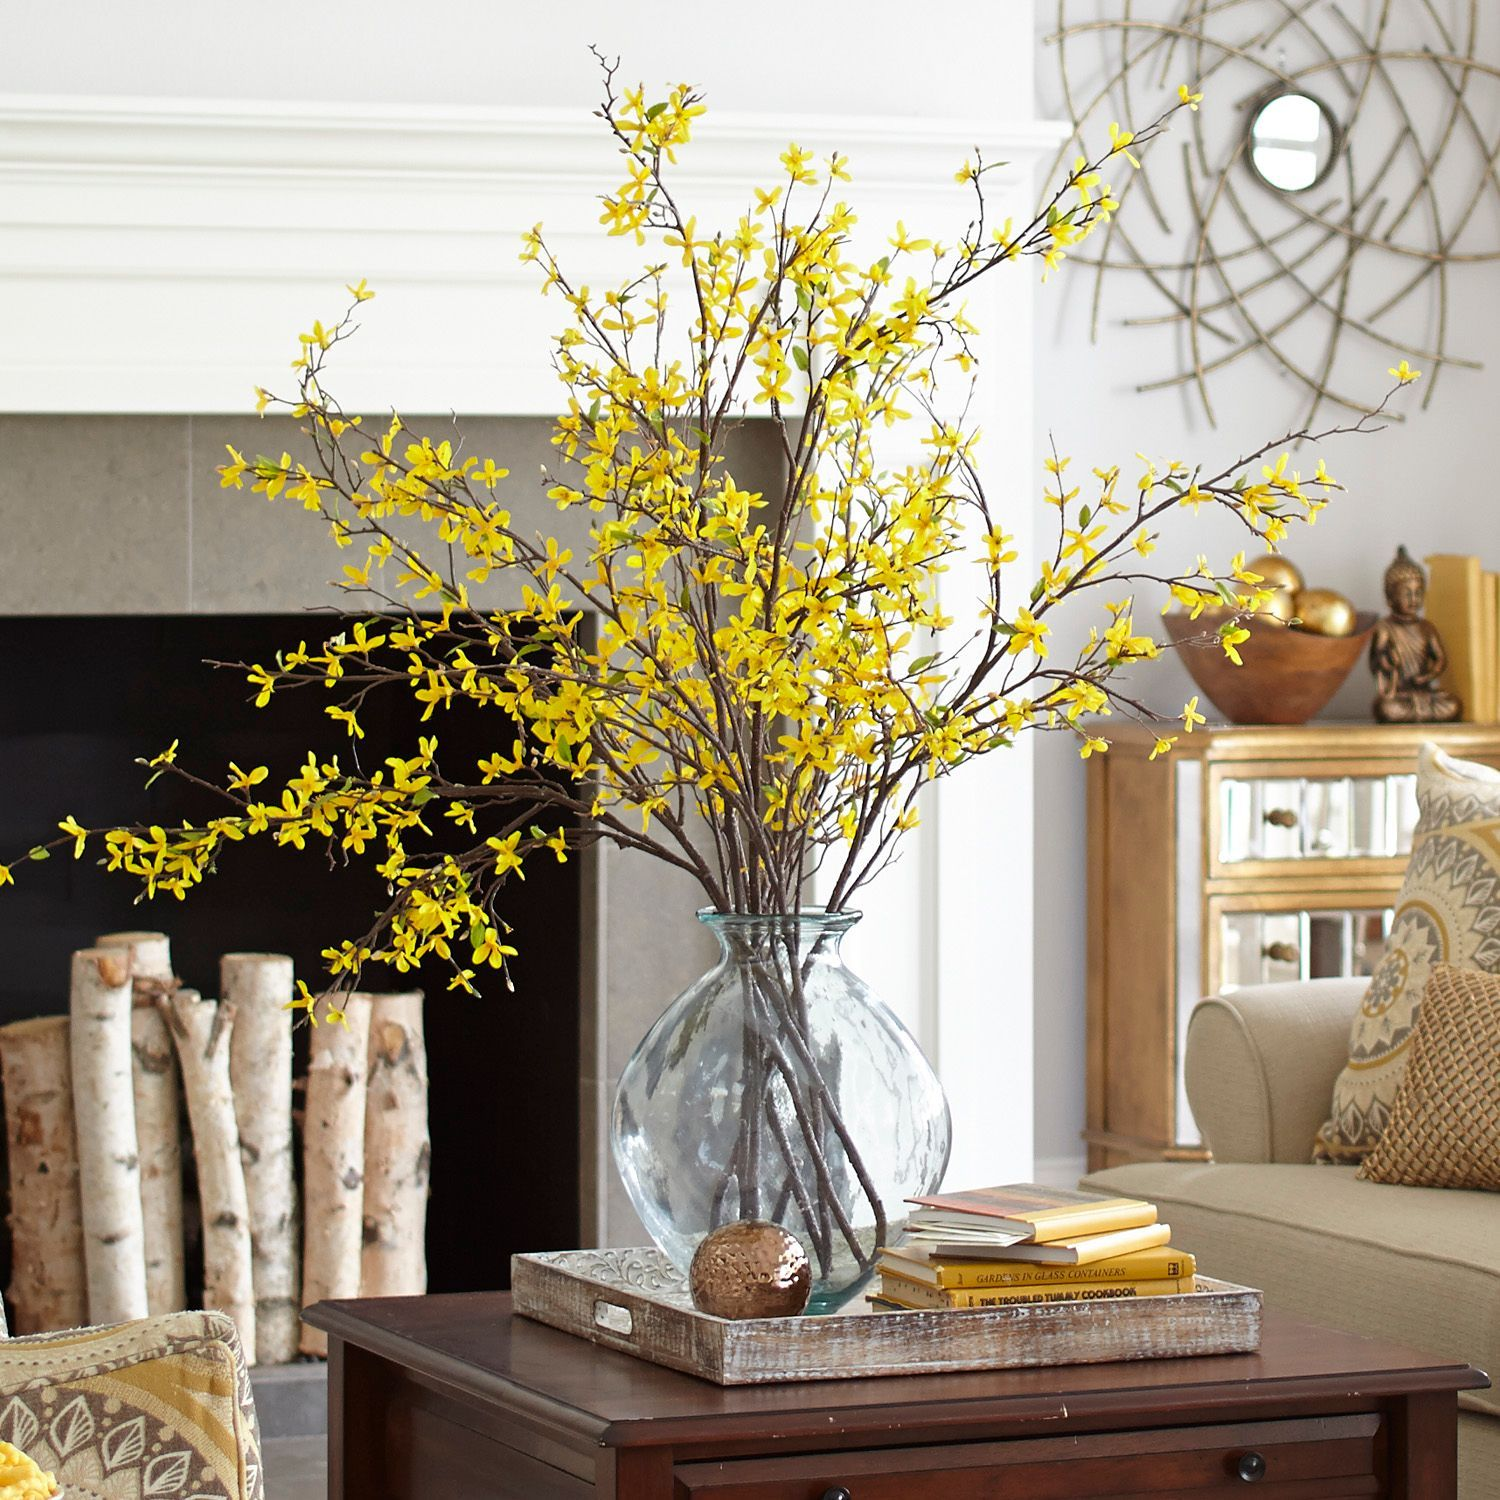 Yellow Faux Forsythia Branch Pier 1 Imports Branch Decor Home Decor Inspiration Dining Room Table Decor